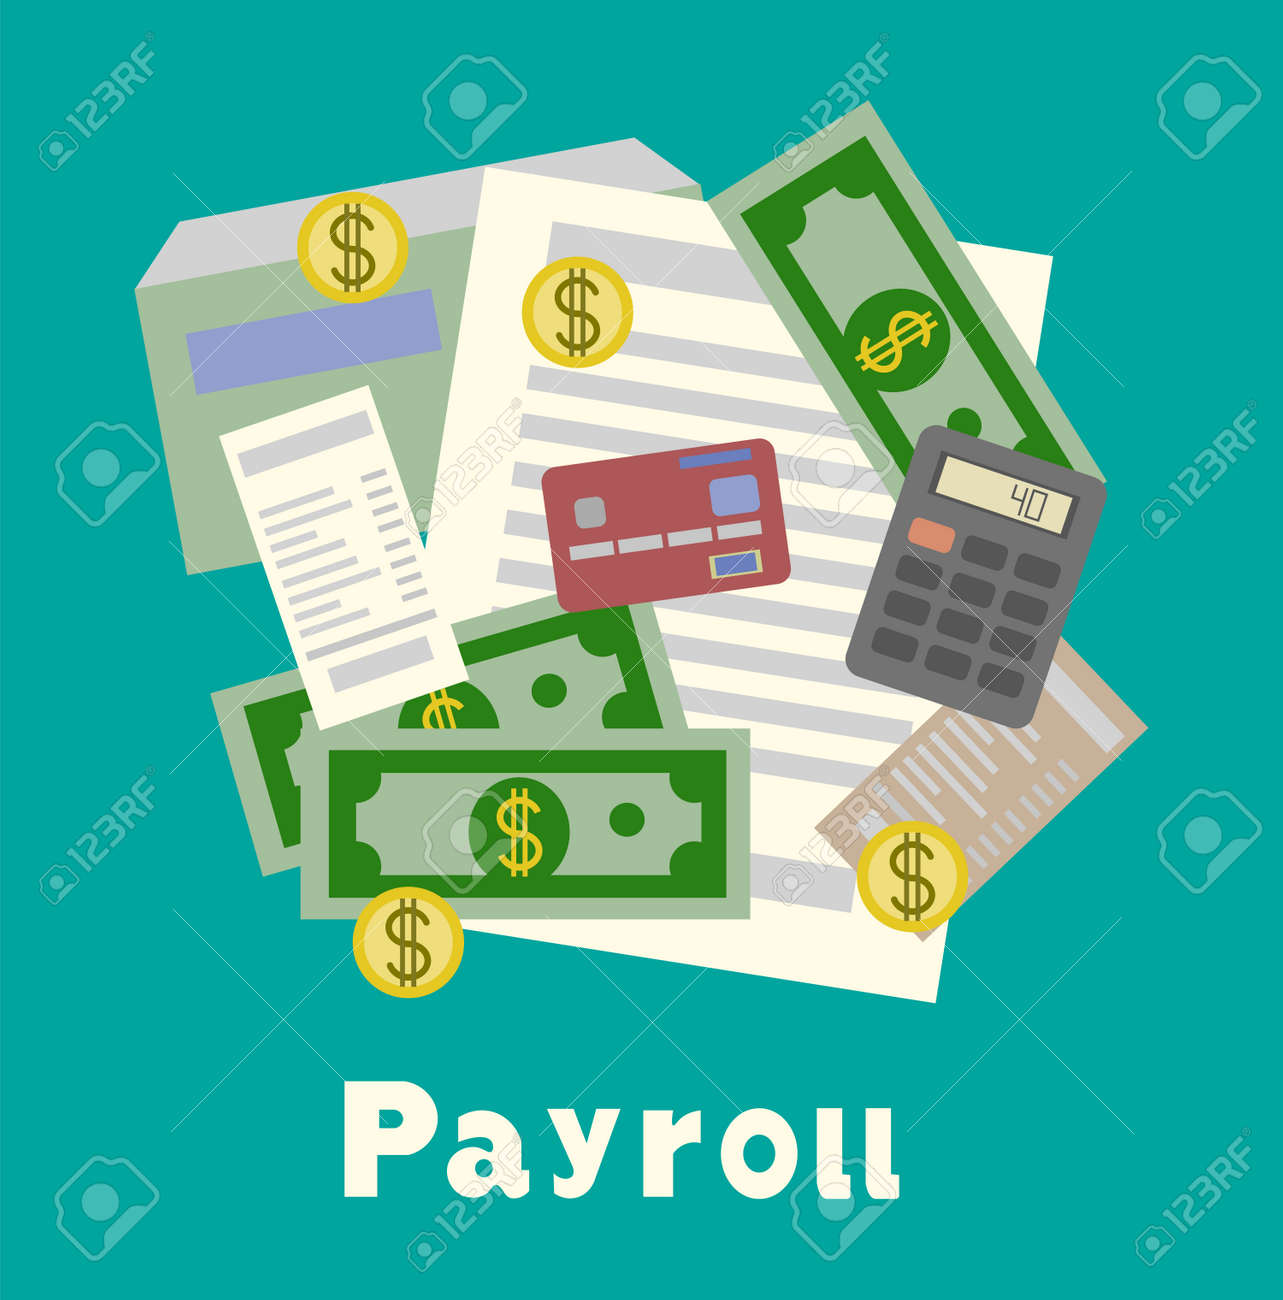 invoice sheet paysheet or payroll icon calculating and budget